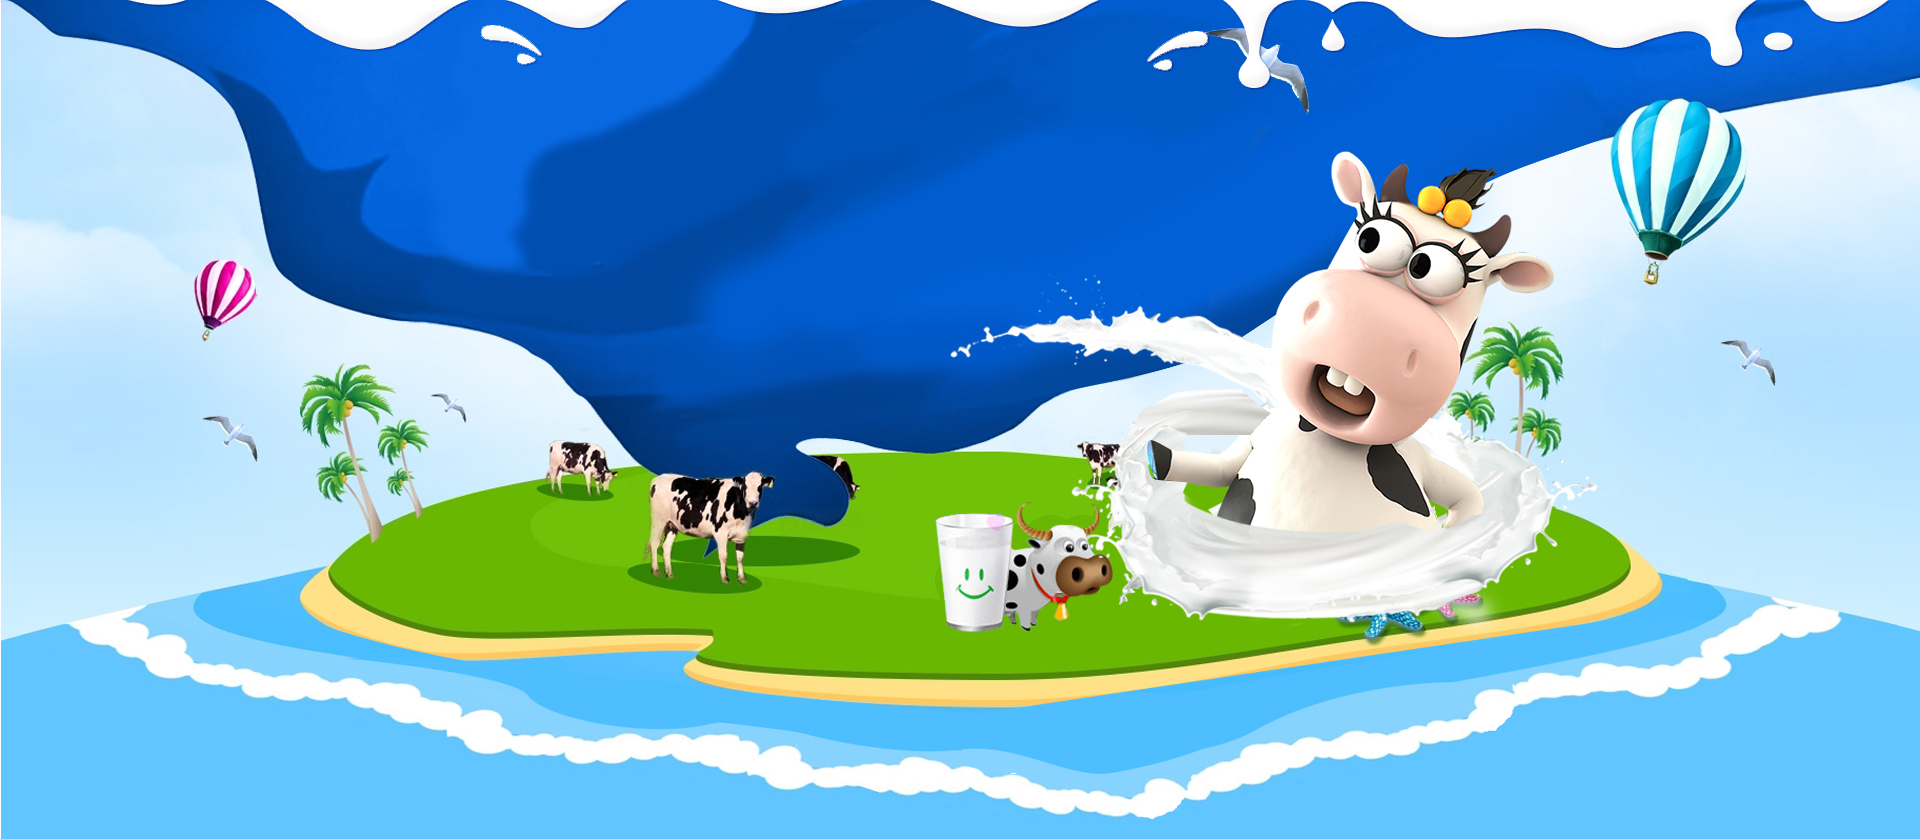 Milk Background Milk Product Dairy Background Image For